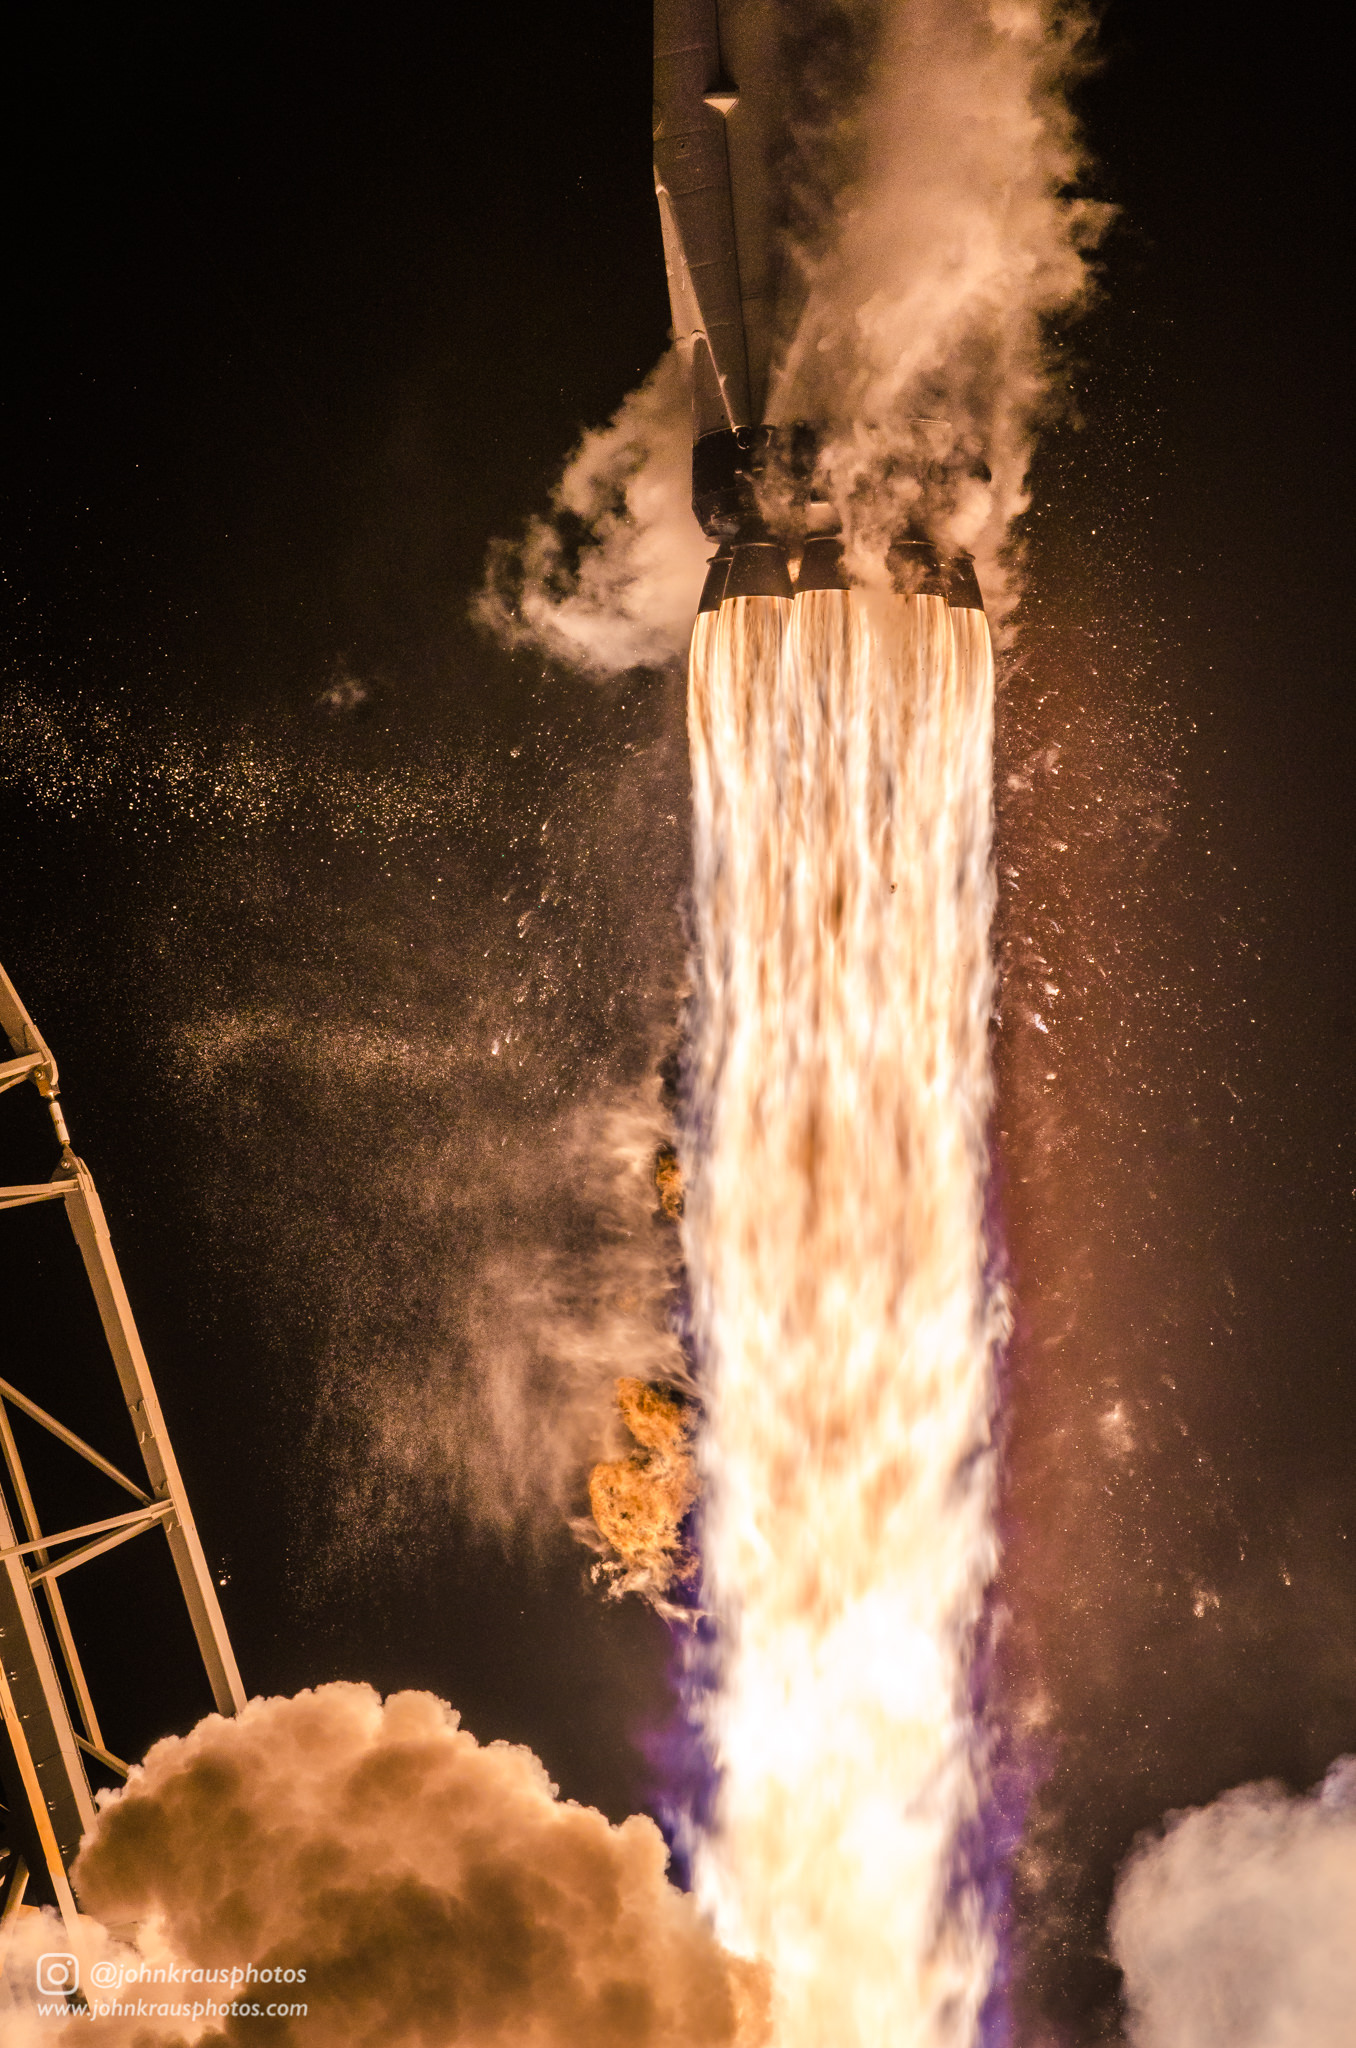 Closeup photograph I shot of Falcon 9's Merlin 1D engines during its 50th flight last week - johnkphotos - bit.ly2p5riZn